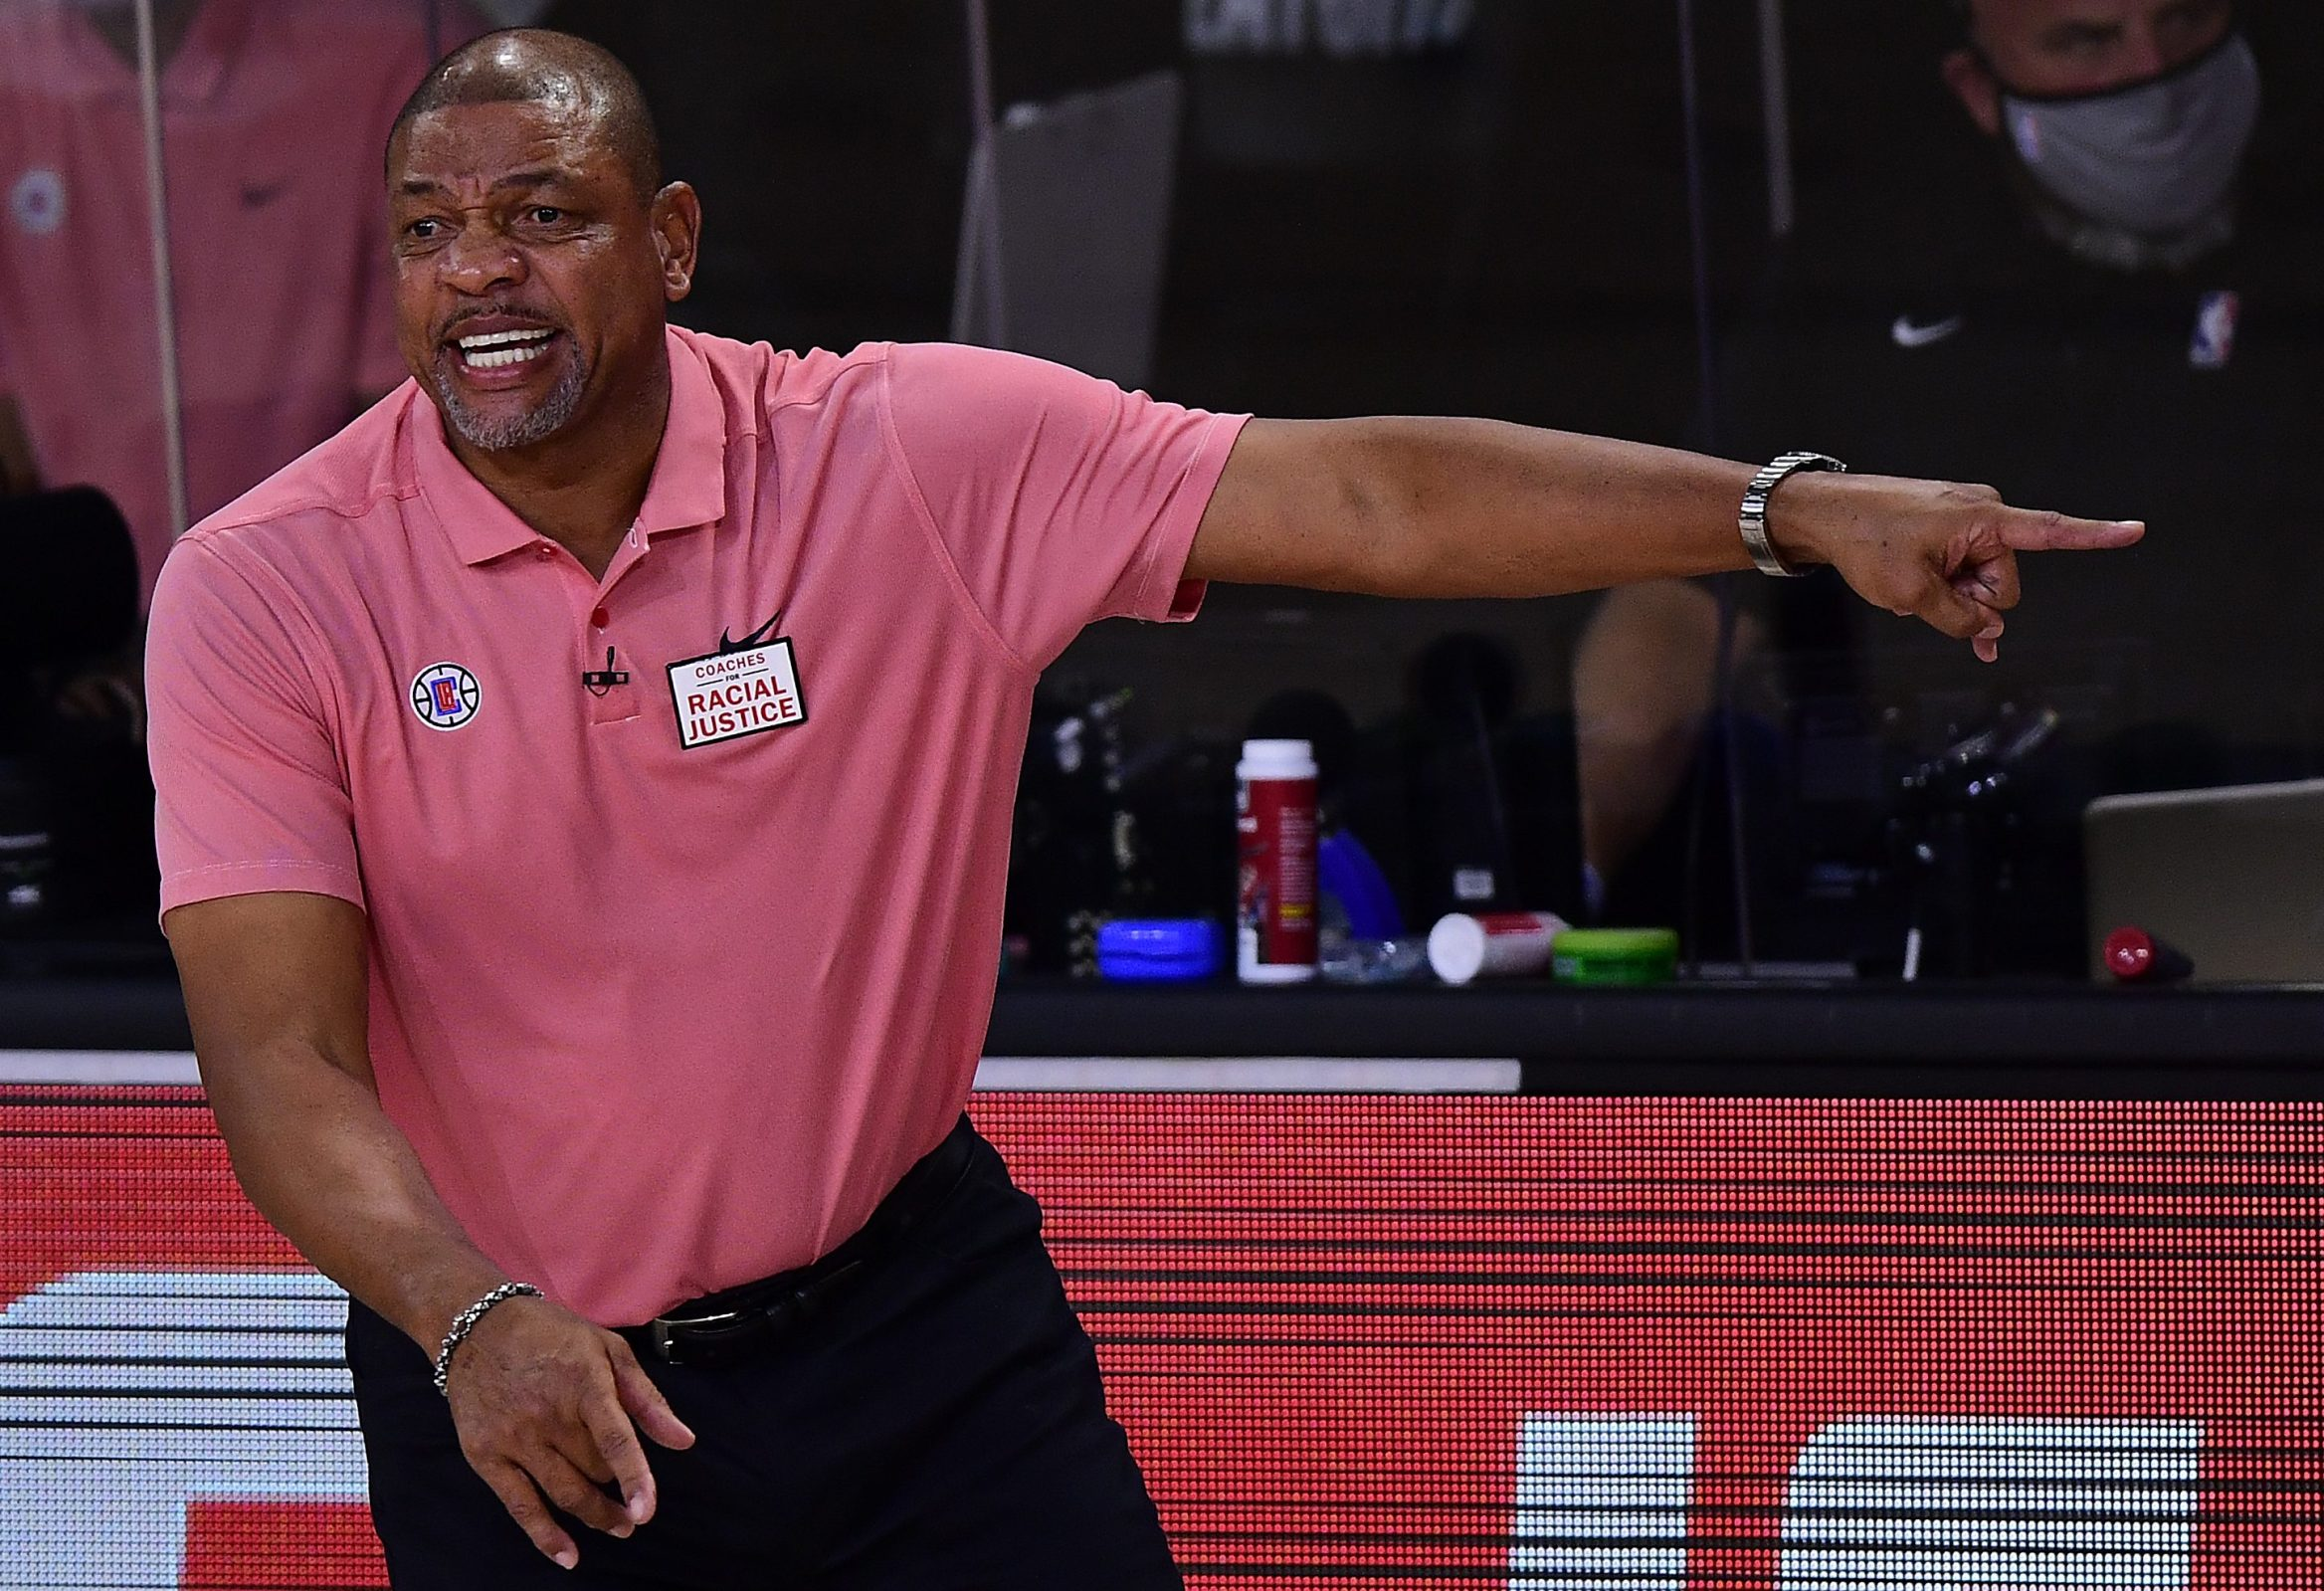 Doc Rivers looks amused on the sidelines of a Clippers playoff game.